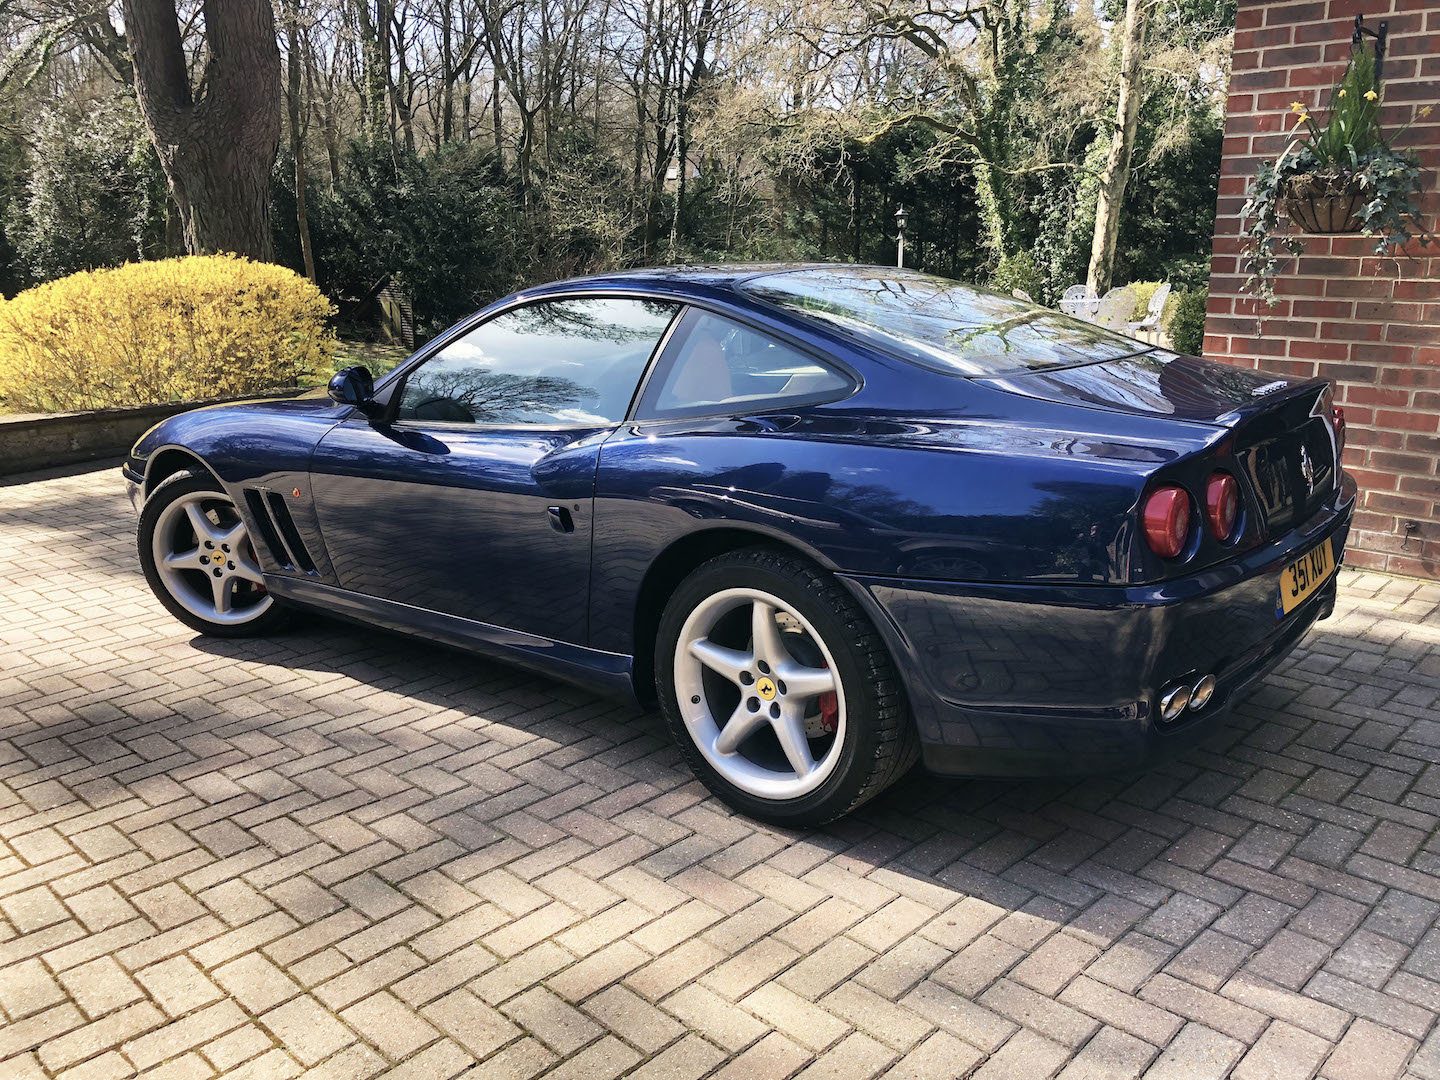 2000 A beautiful, well kept low milage 550 maranello  For Sale (picture 2 of 6)